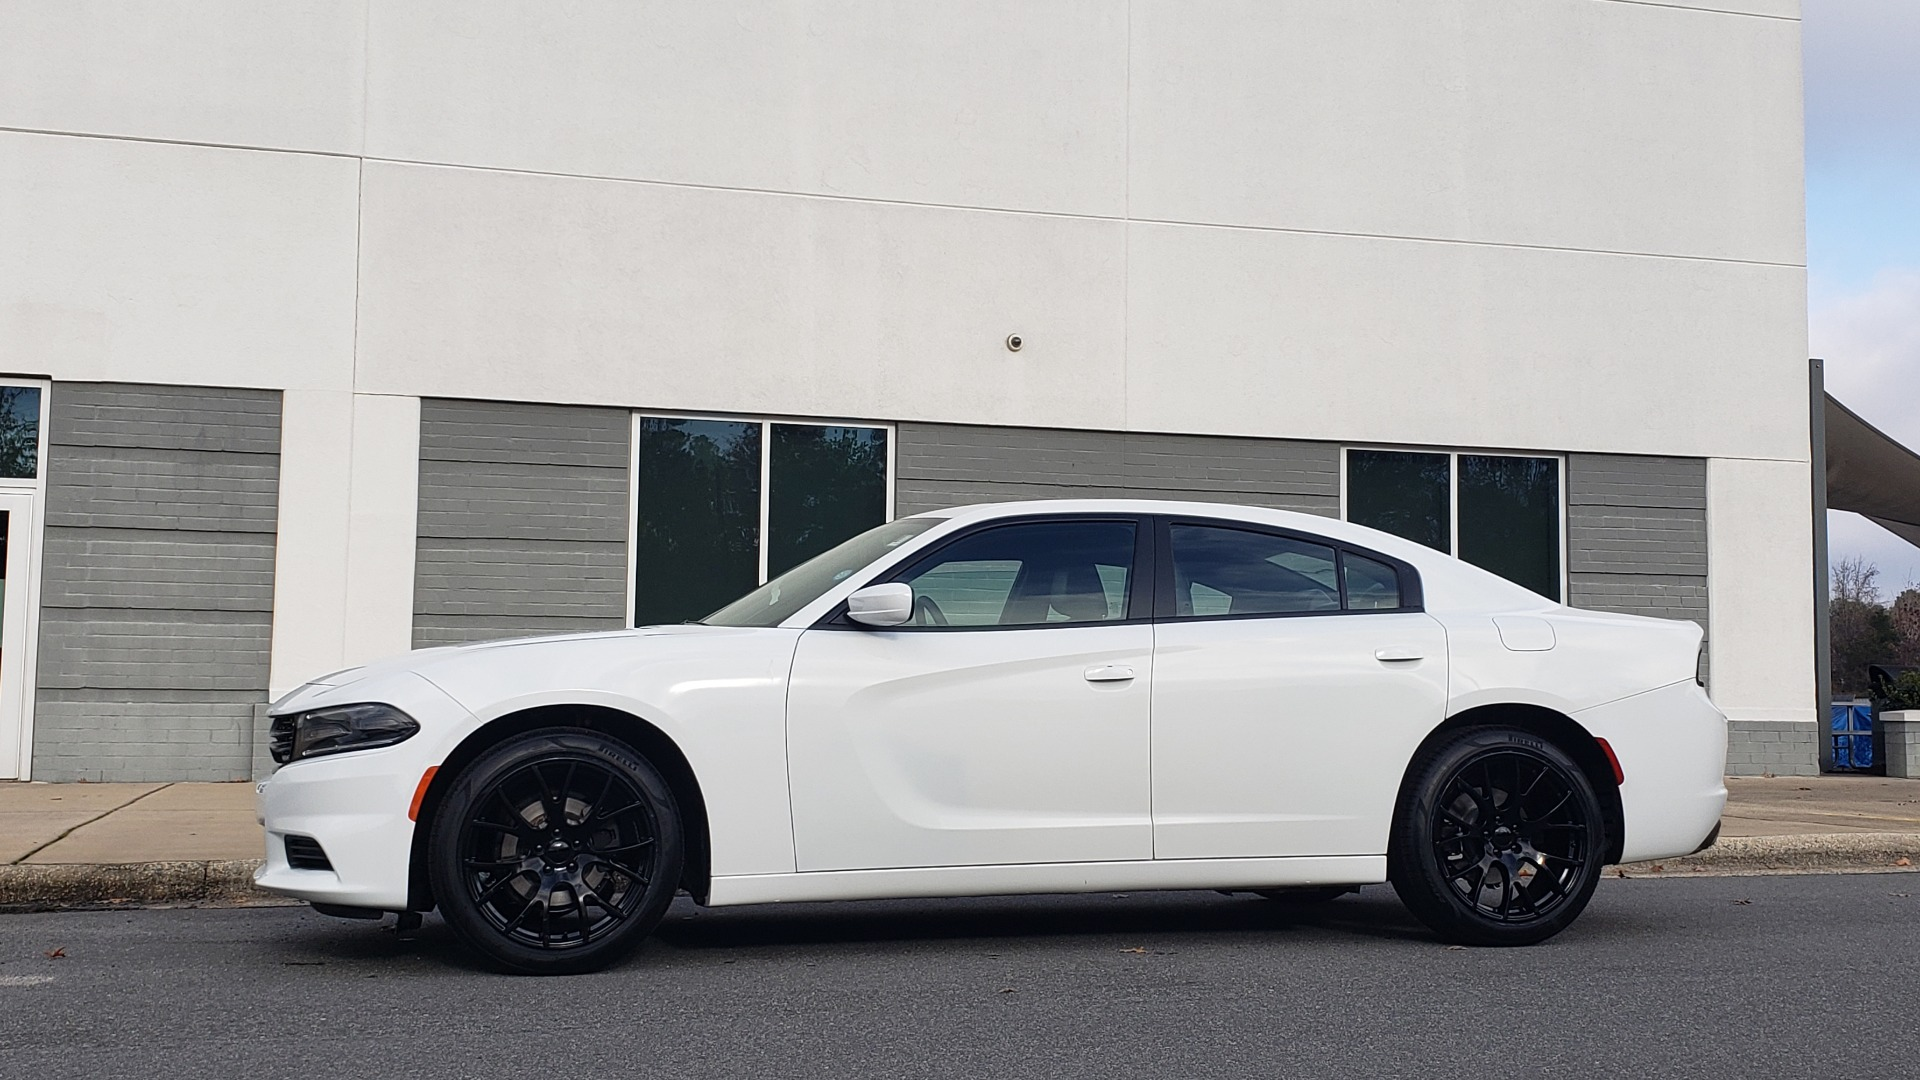 Used 2020 Dodge CHARGER SXT / RWD / V6 / 8-SPD AUTO / LTHR / HTD STS / SUNROOF / REARVIEW for sale $25,995 at Formula Imports in Charlotte NC 28227 7